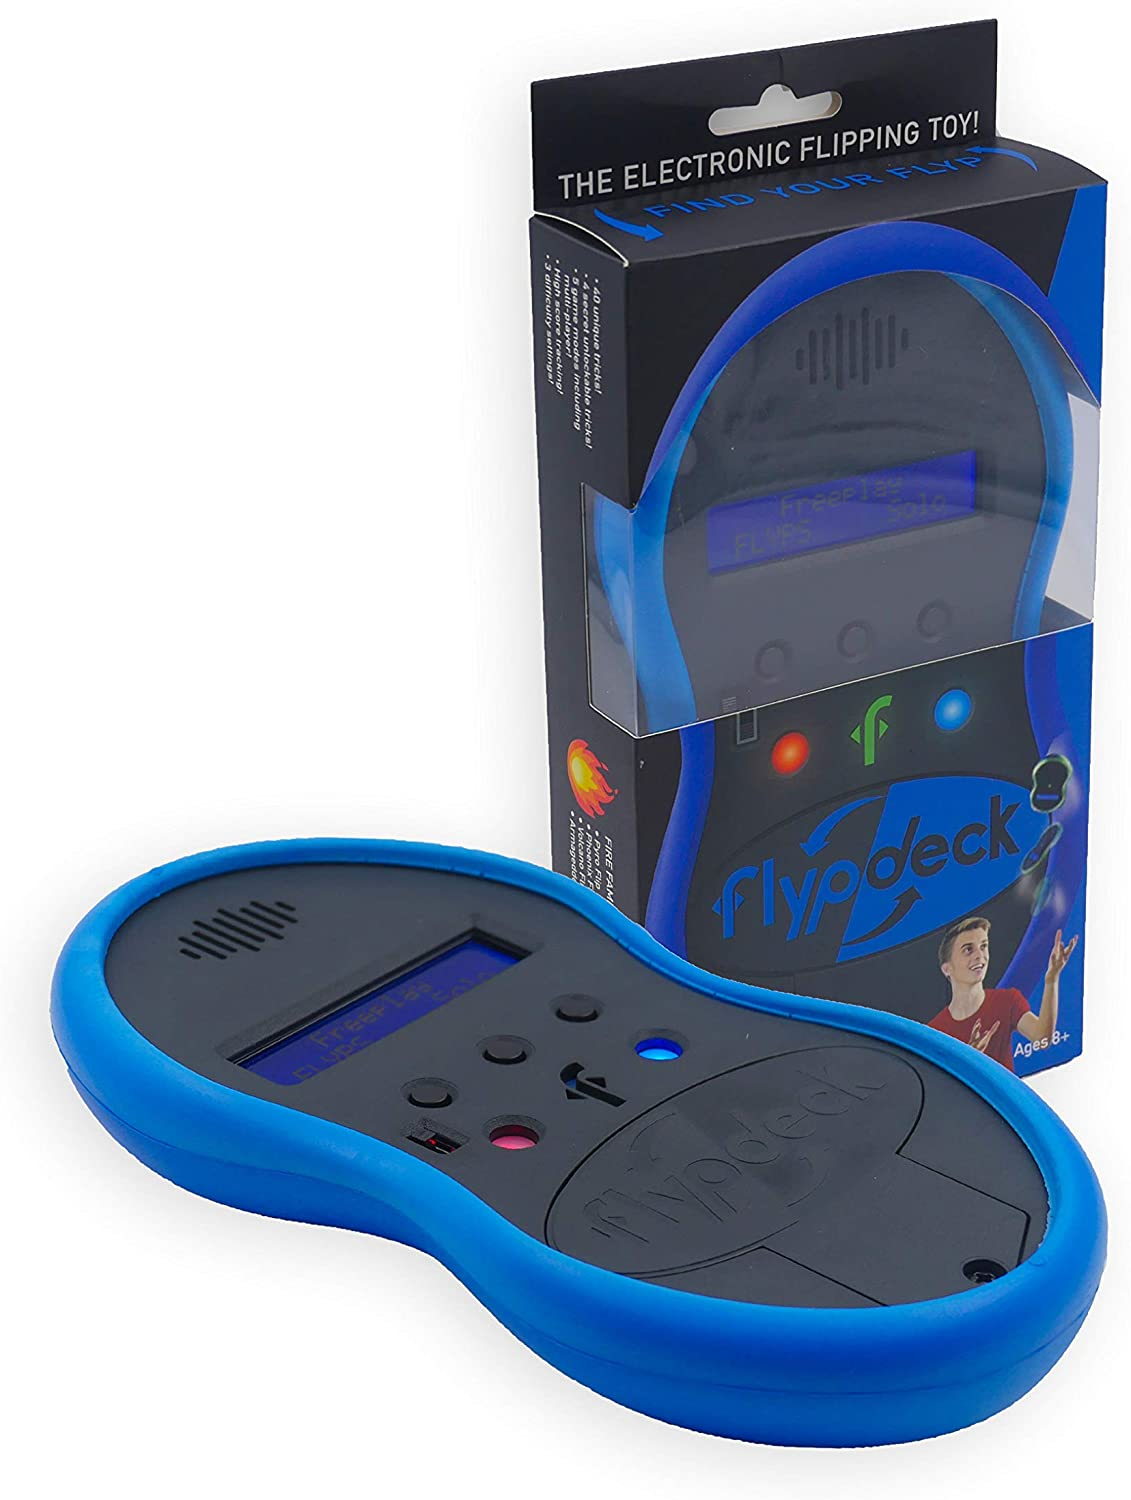 Large special price !! Flypdeck - Max 44% OFF The World's First Flipping Action Handheld Electronic